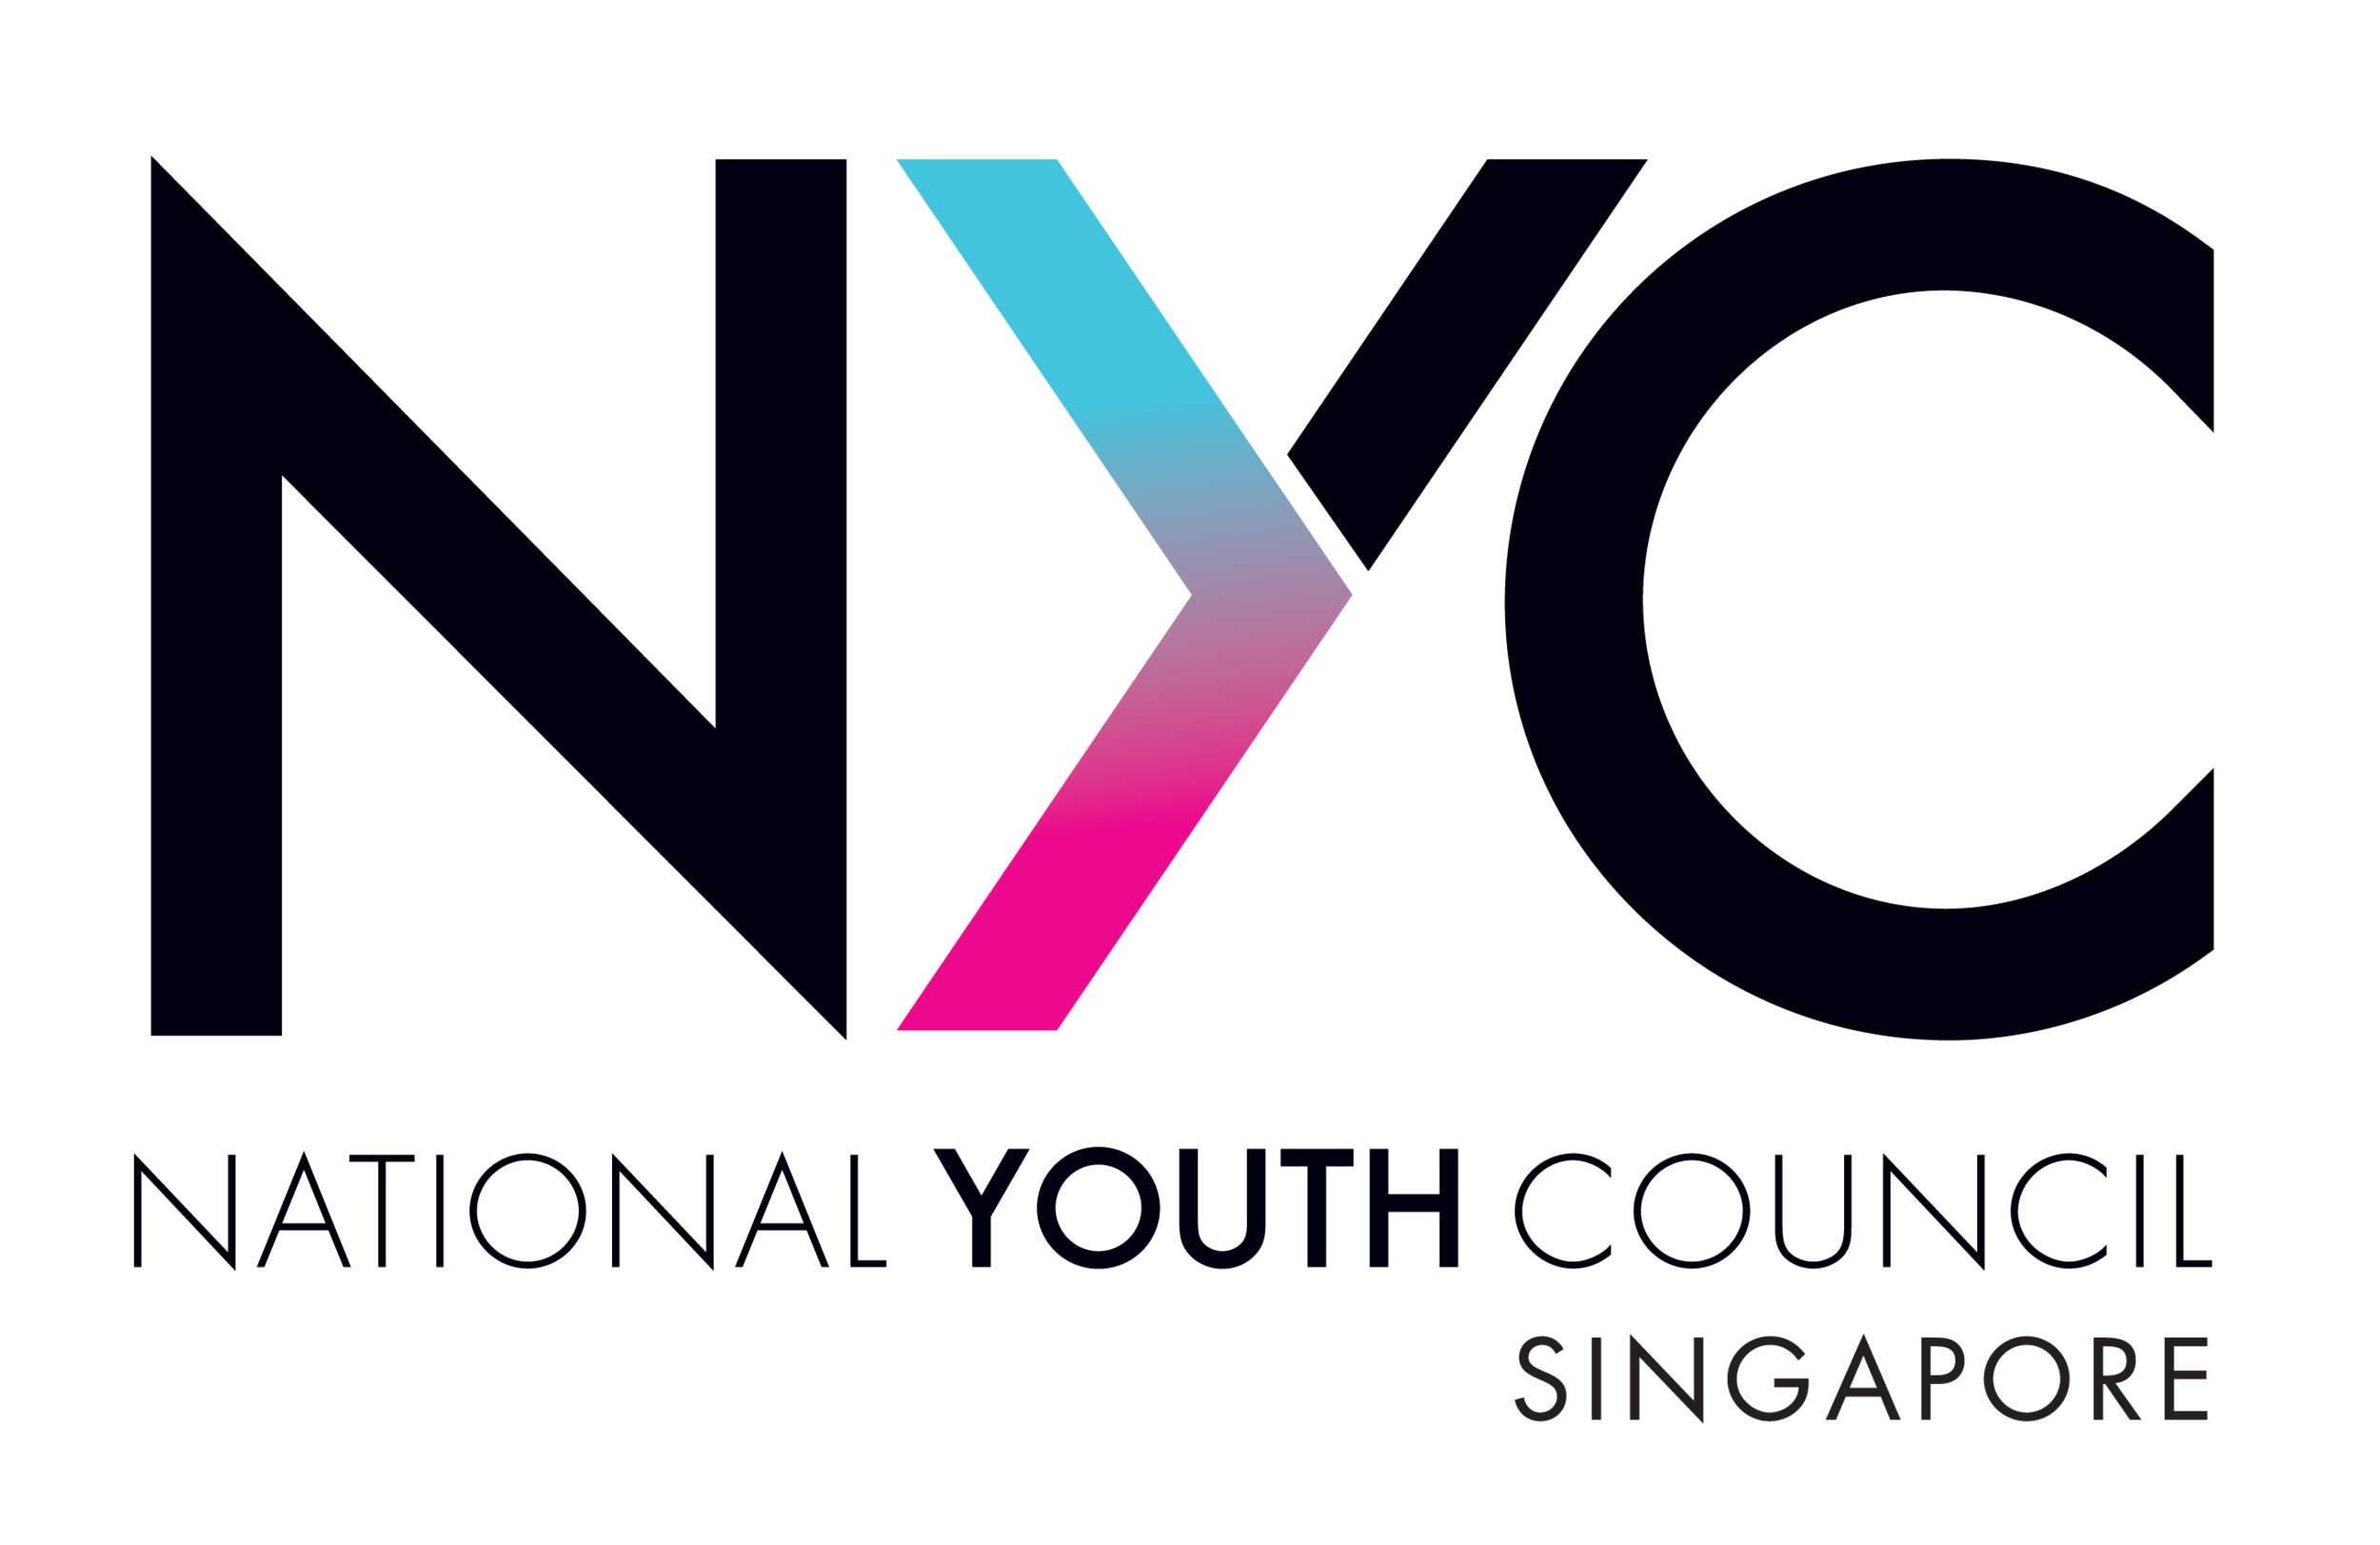 National Youth Council - A long-time supporter, funding our inaugural production, Void Deck (February 2019) and Wilderness (August 2019)